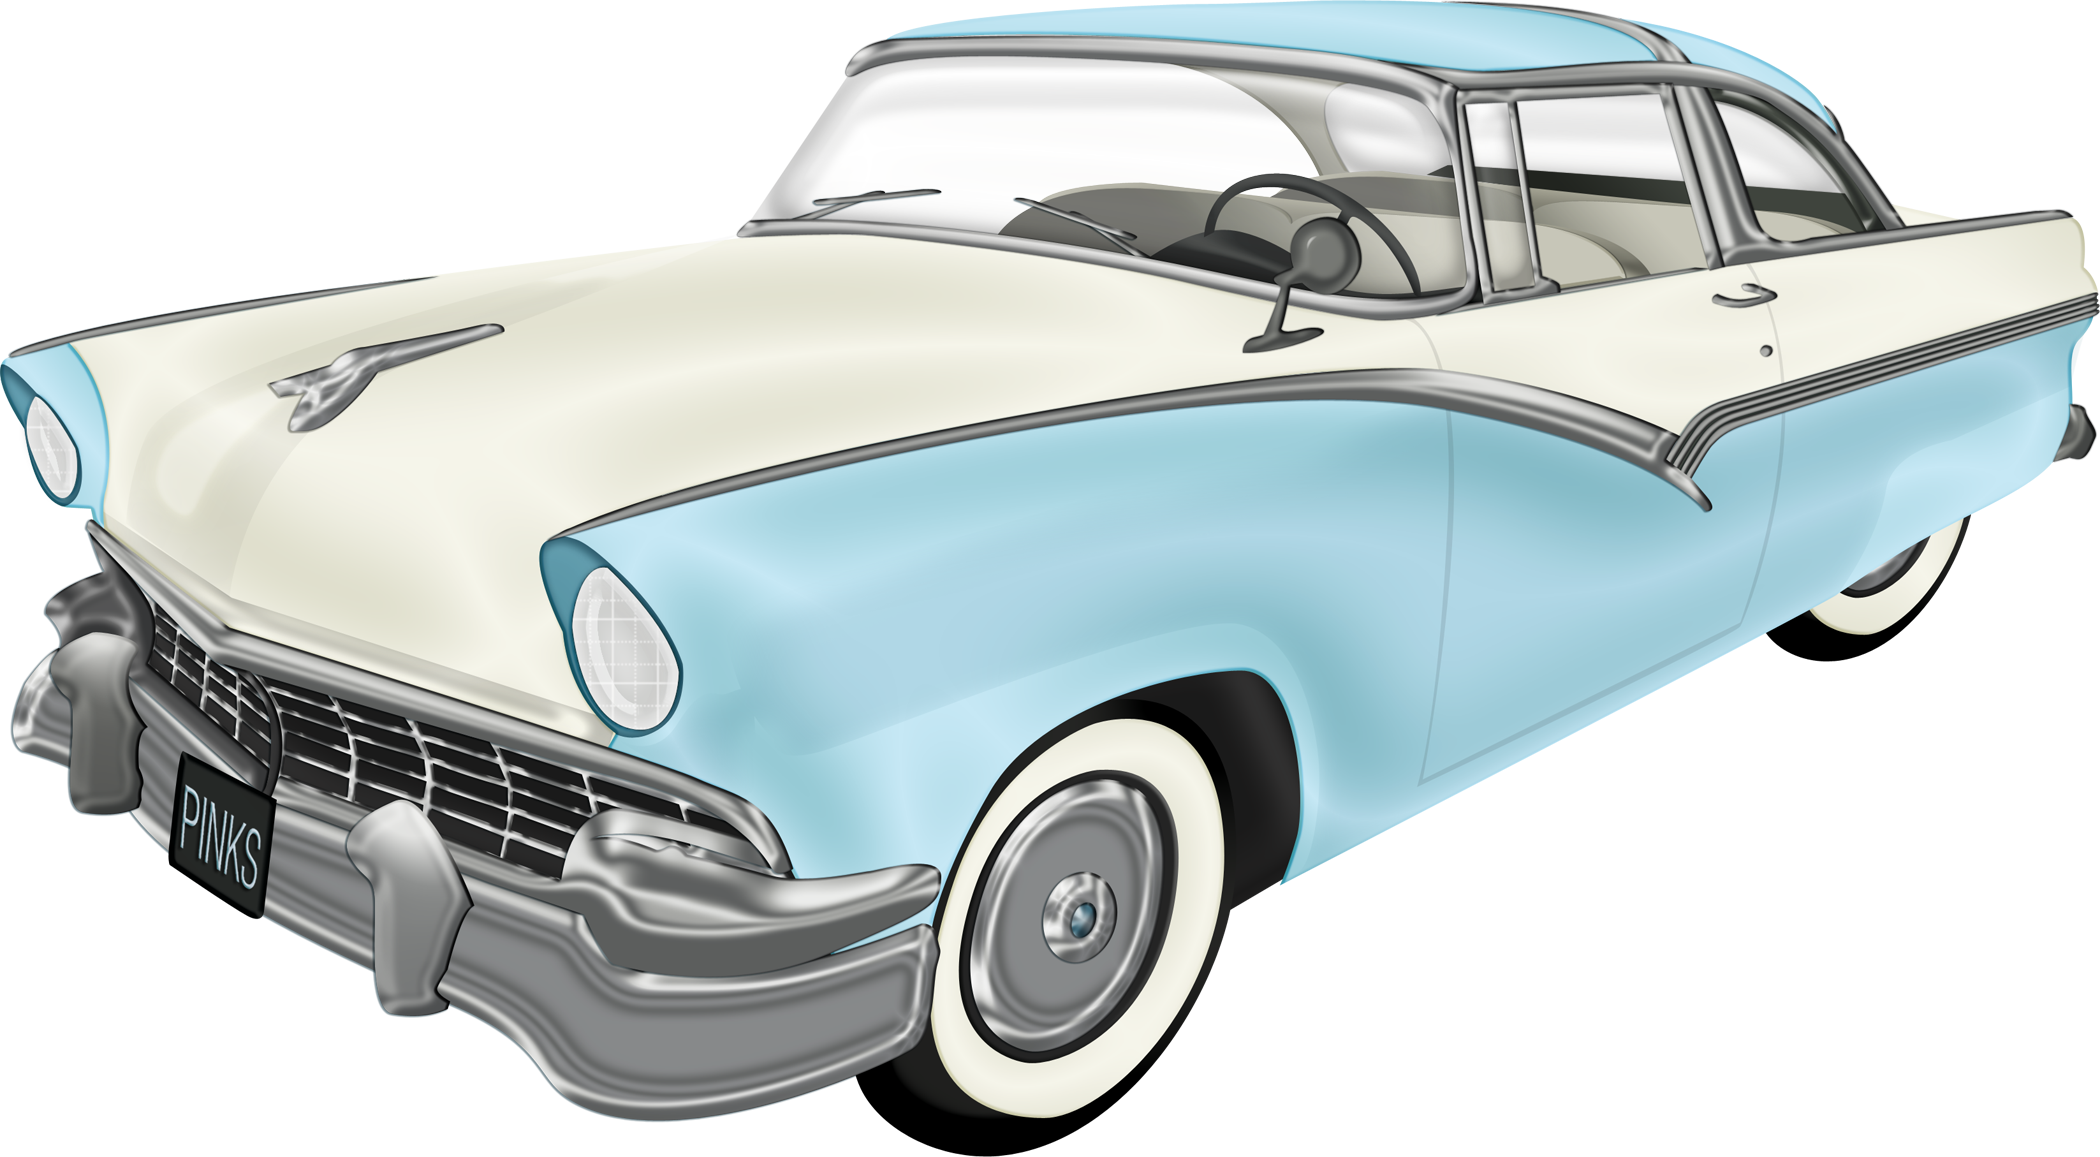 Classic Car clipart Clipart Cliparts Car and Inspiration